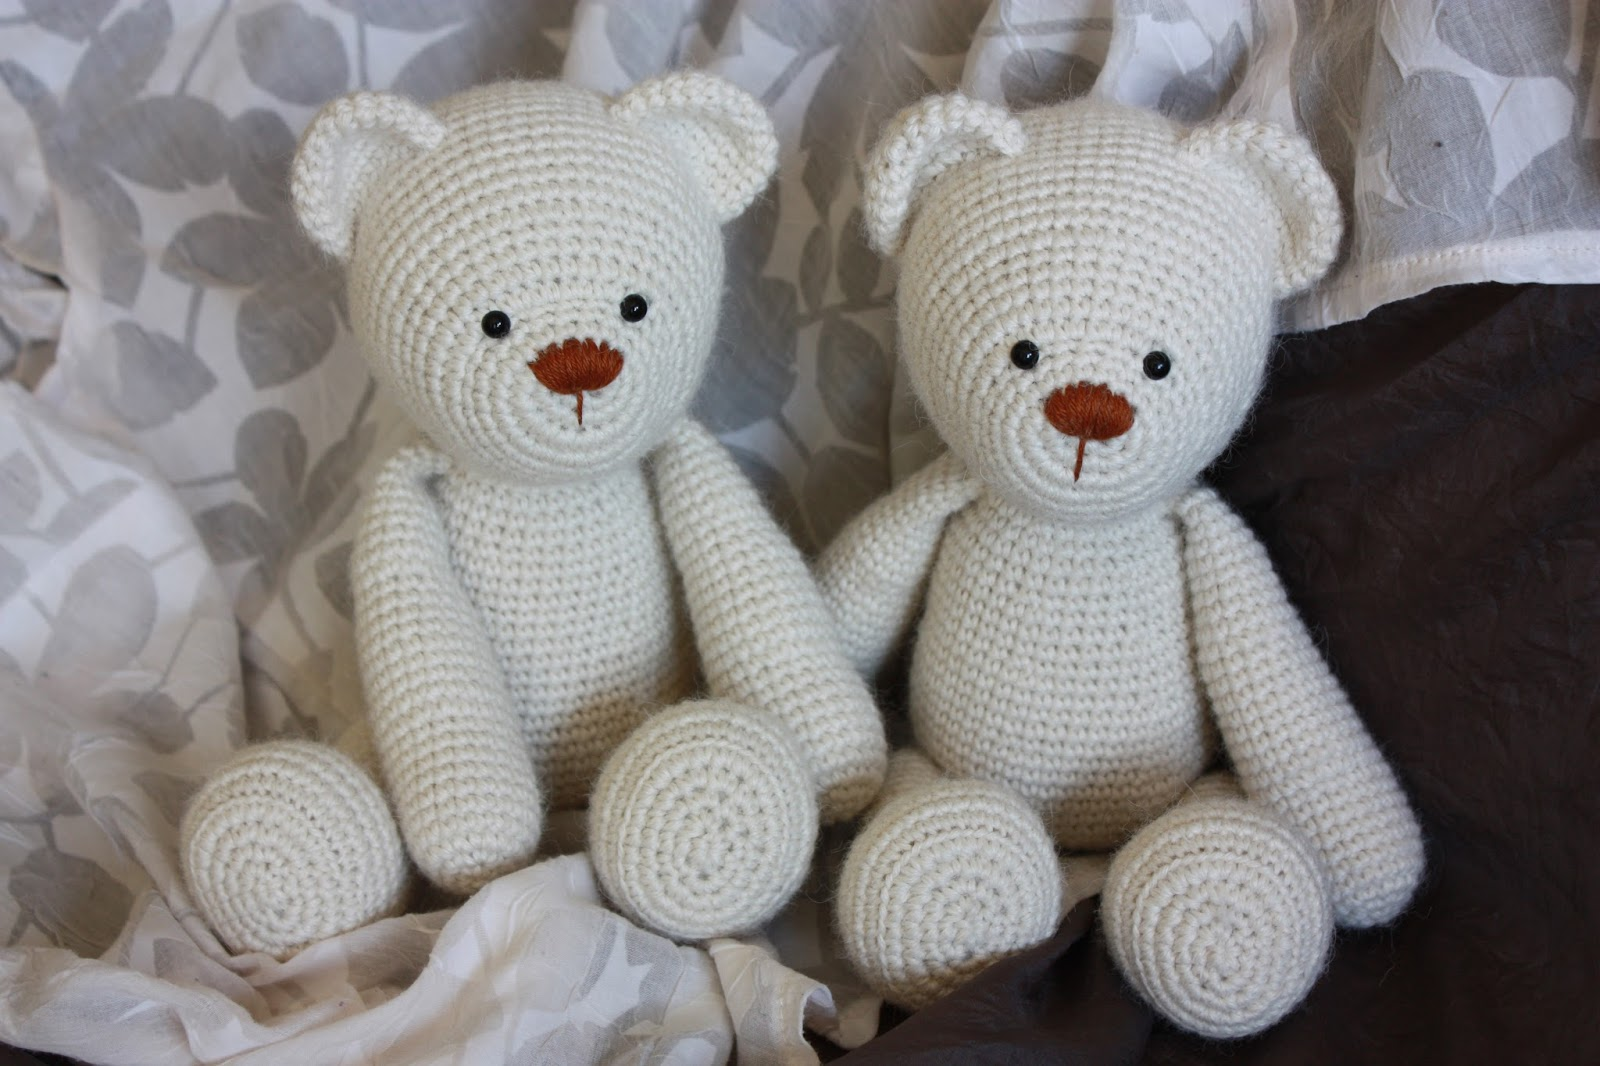 Amigurumi creations by Happyamigurumi